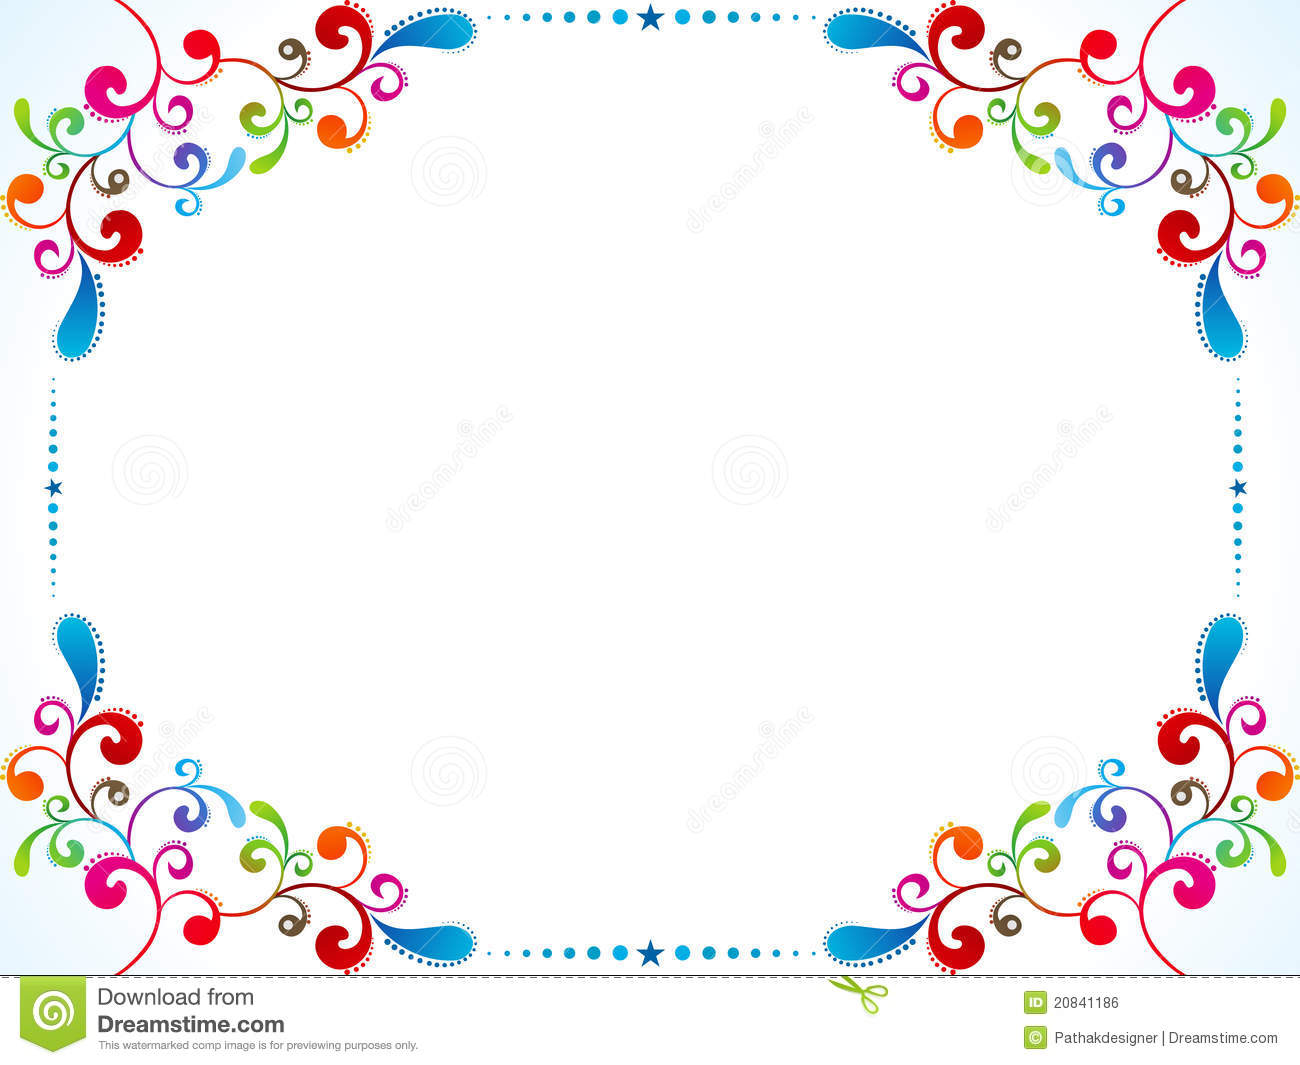 Abstract Colorful Floral Border Royalty Free Stock Image - Image ...